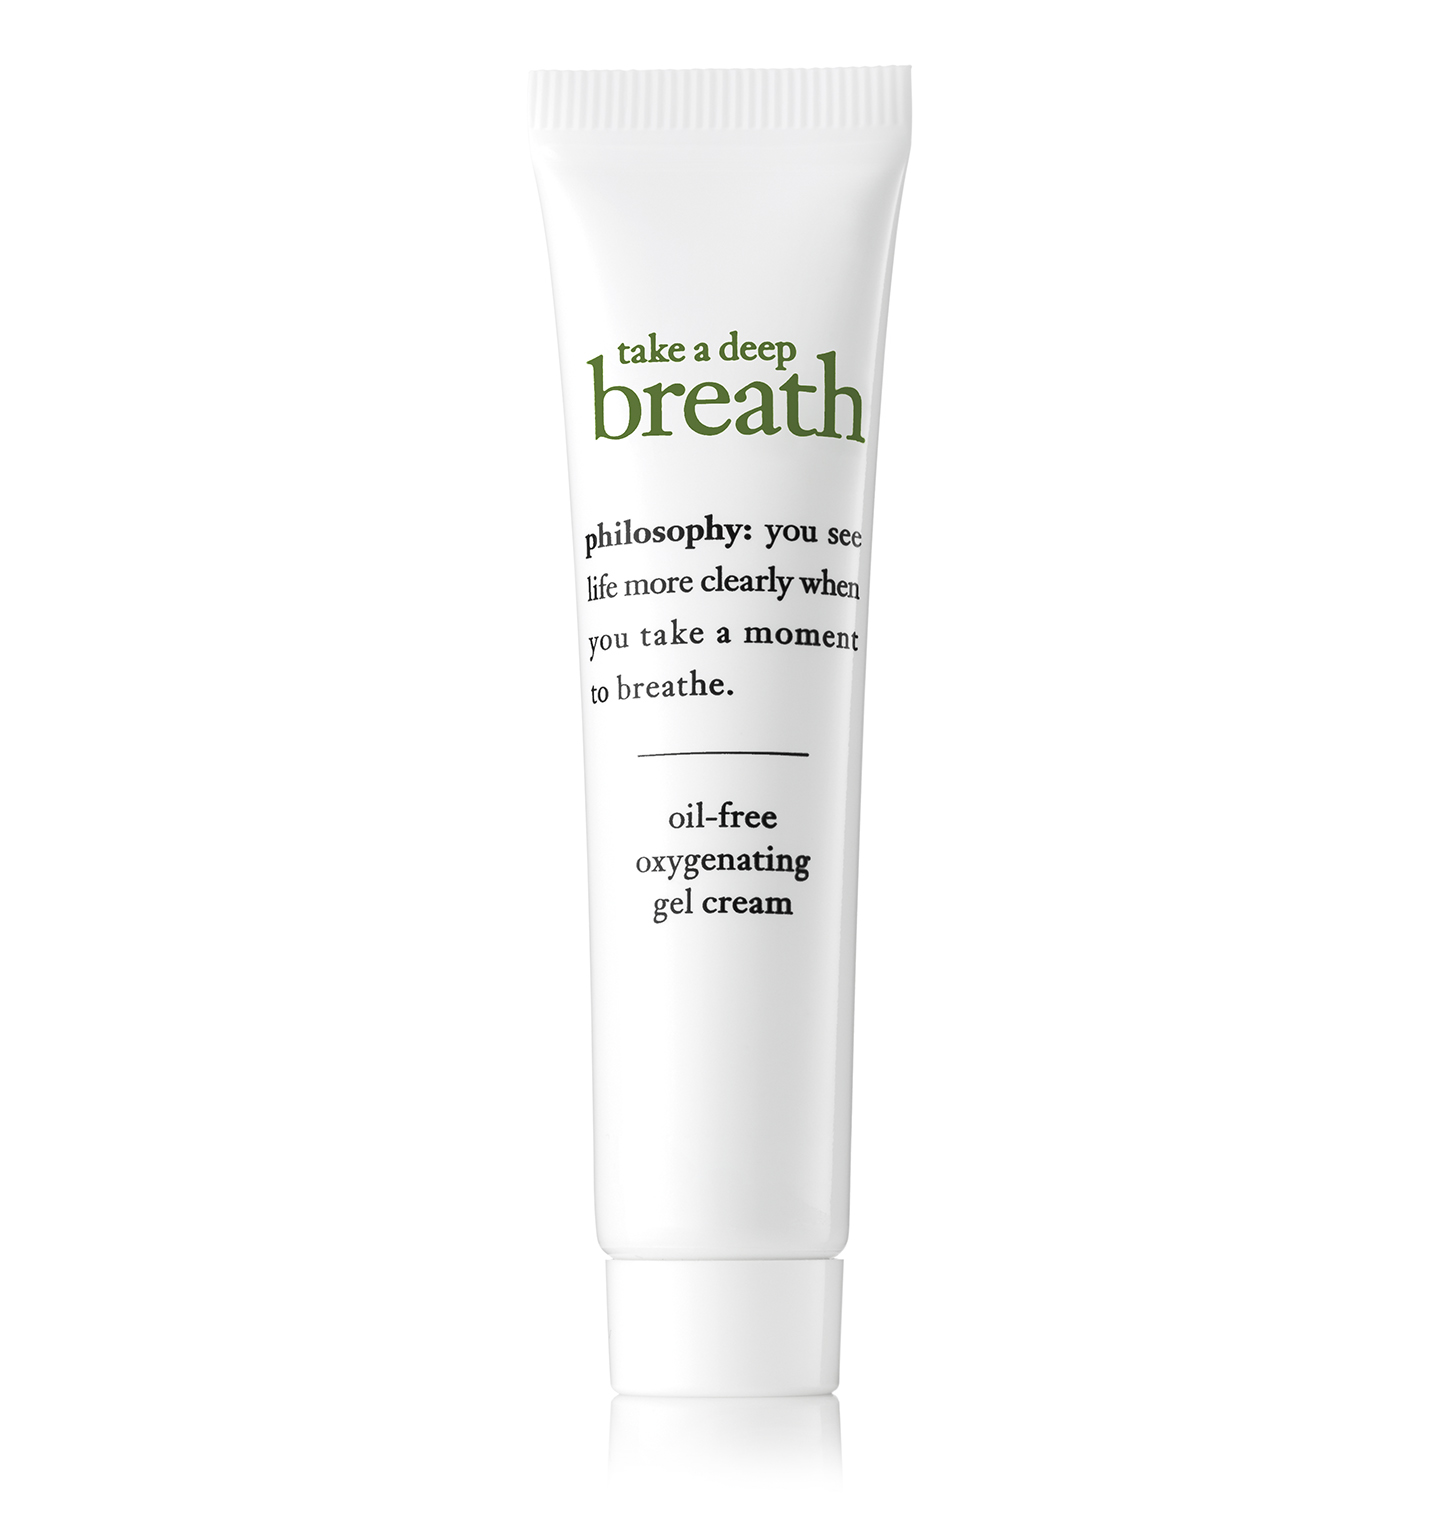 take a deep breath oil-free oxygenating gel cream